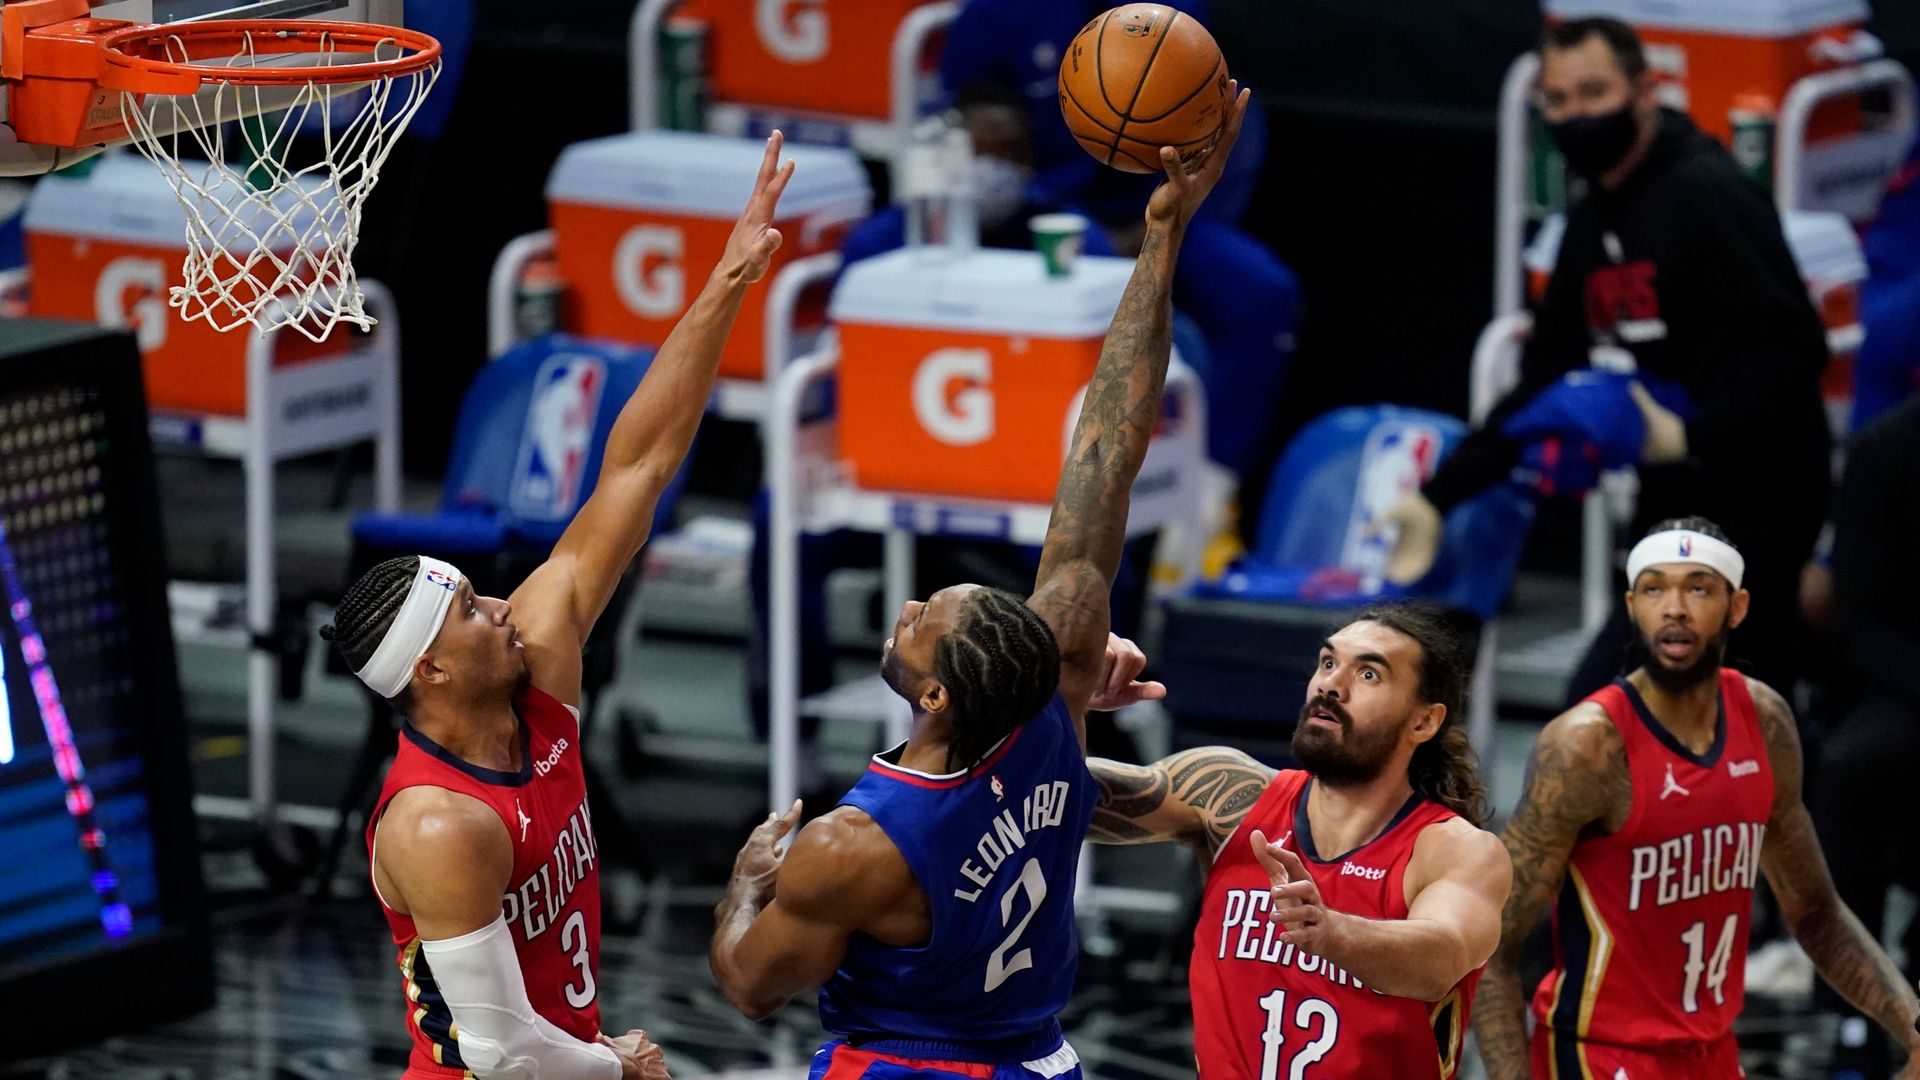 Clippers hold off short-handed Pelicans; Lillard goes for 40